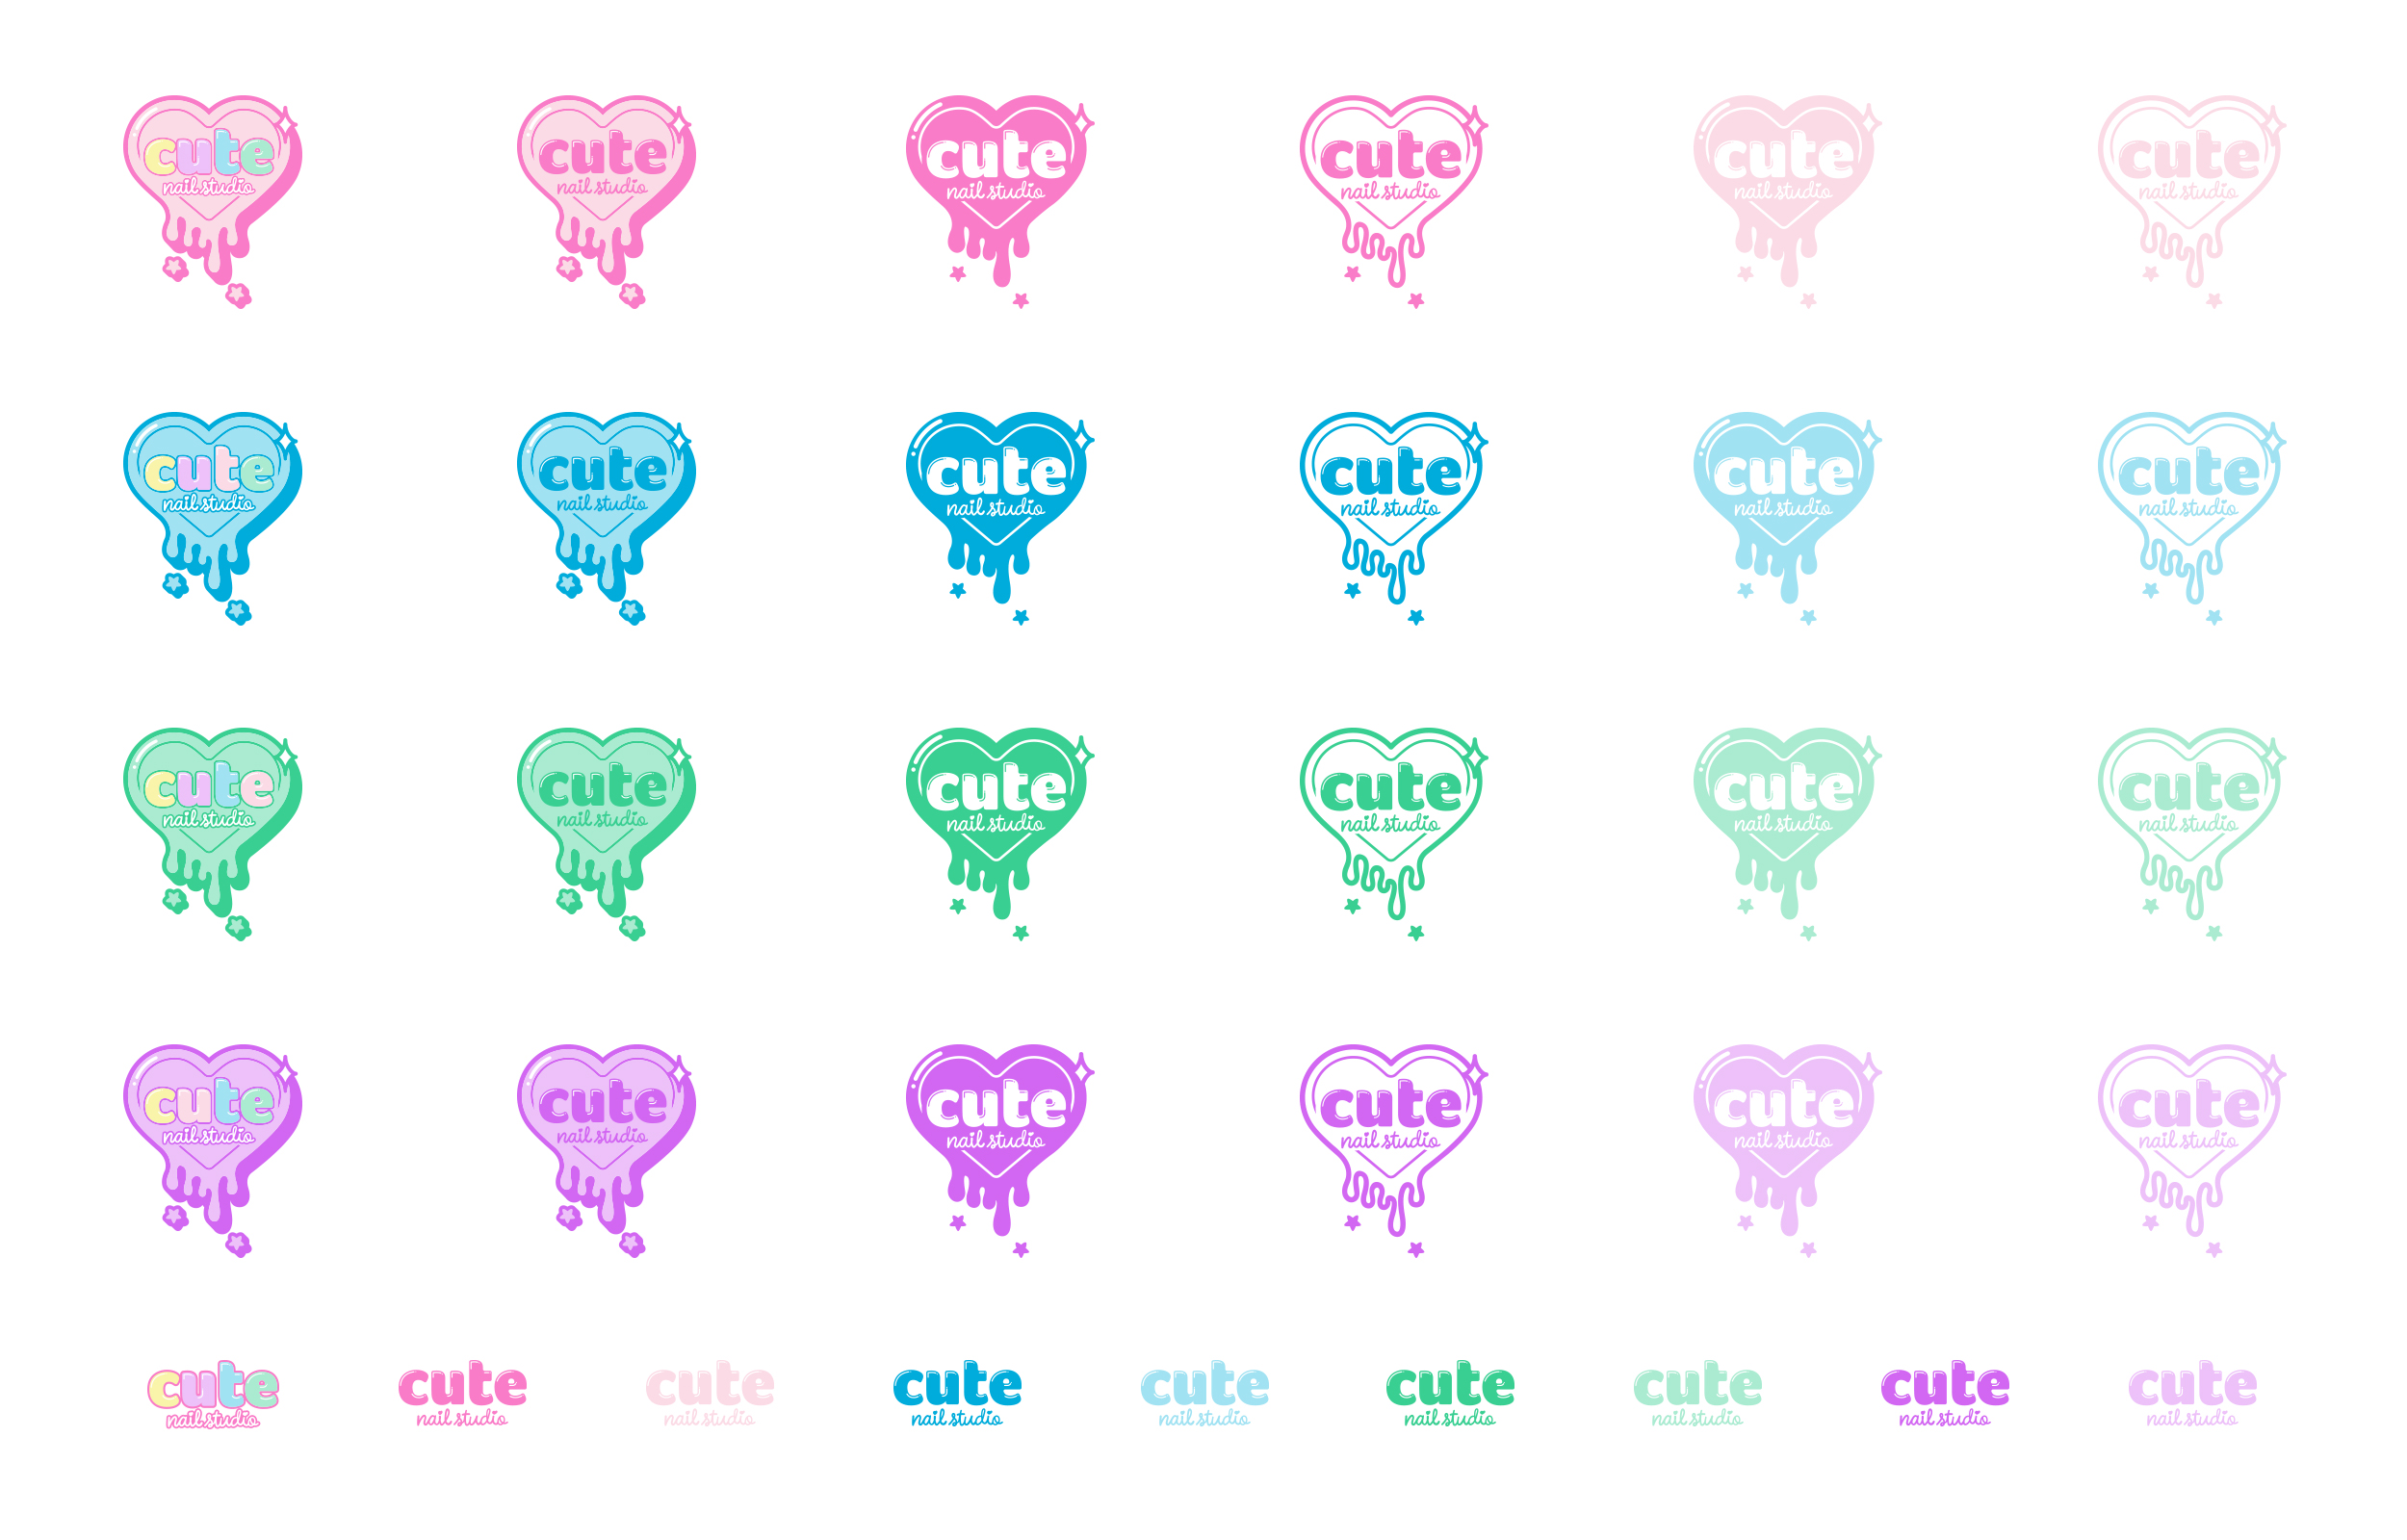 Cute_Logo_grid.jpg